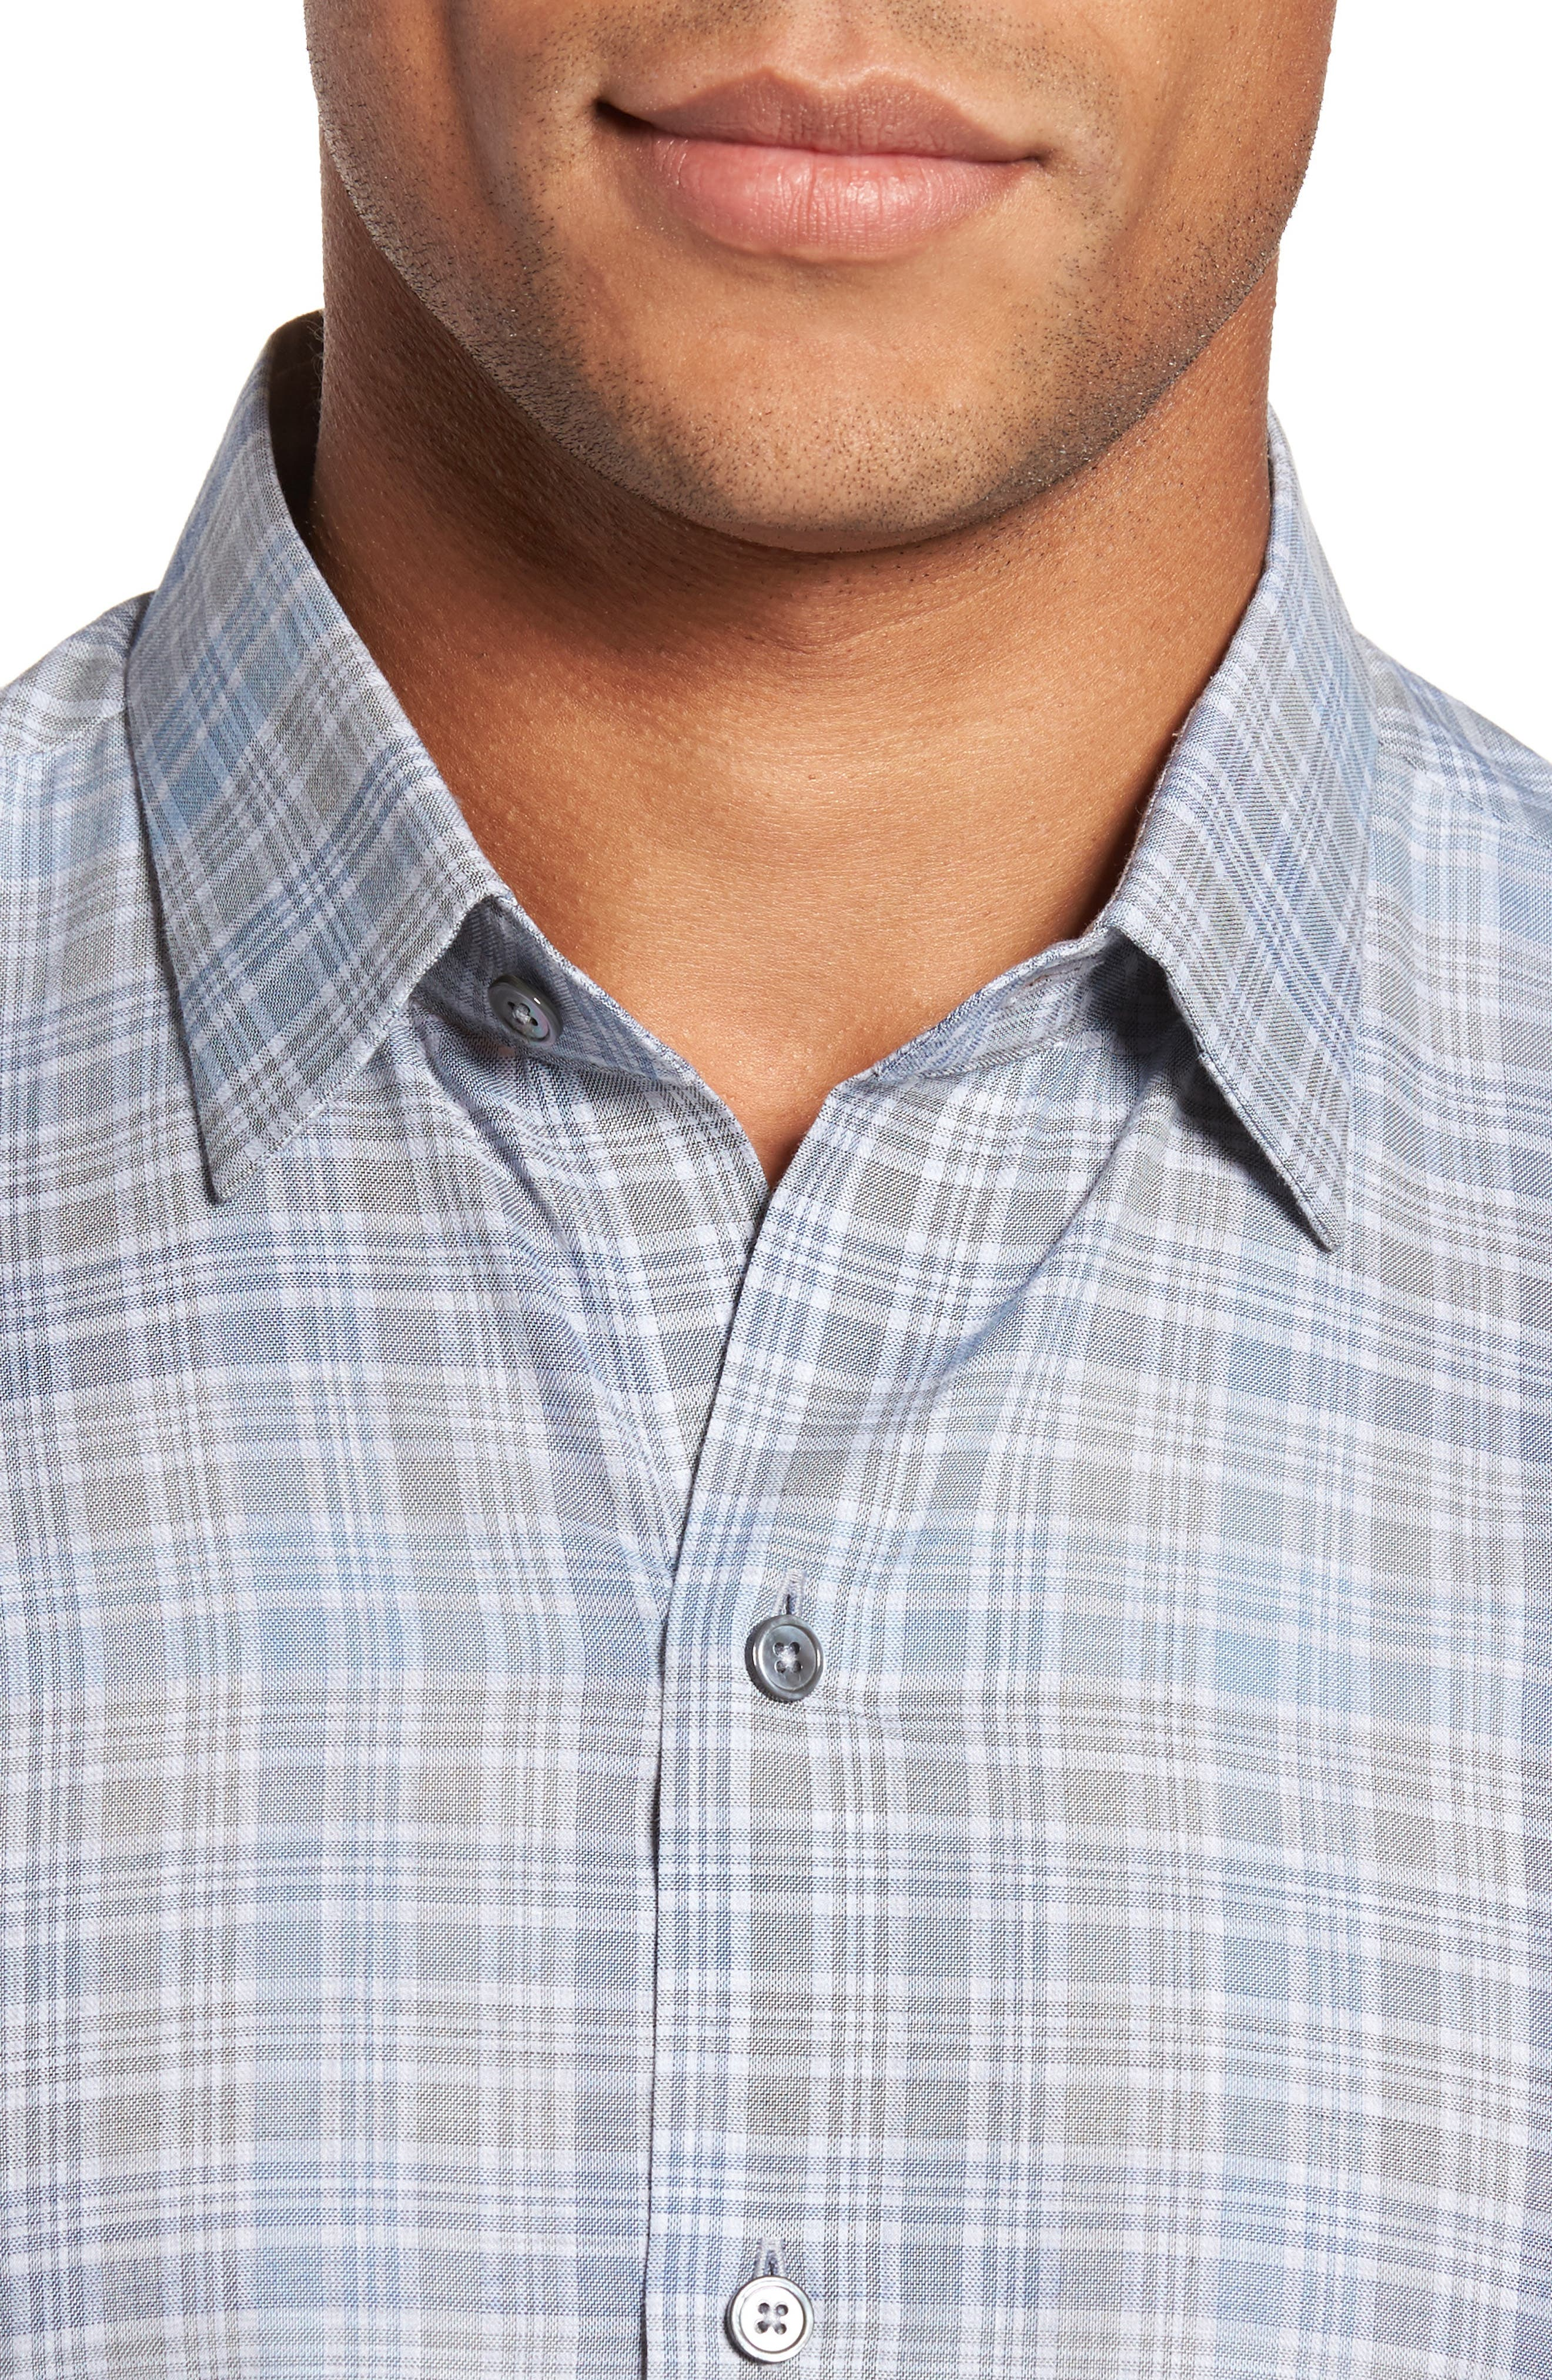 Johannes Slim Fit Plaid Sport Shirt,                             Alternate thumbnail 4, color,                             Light Grey